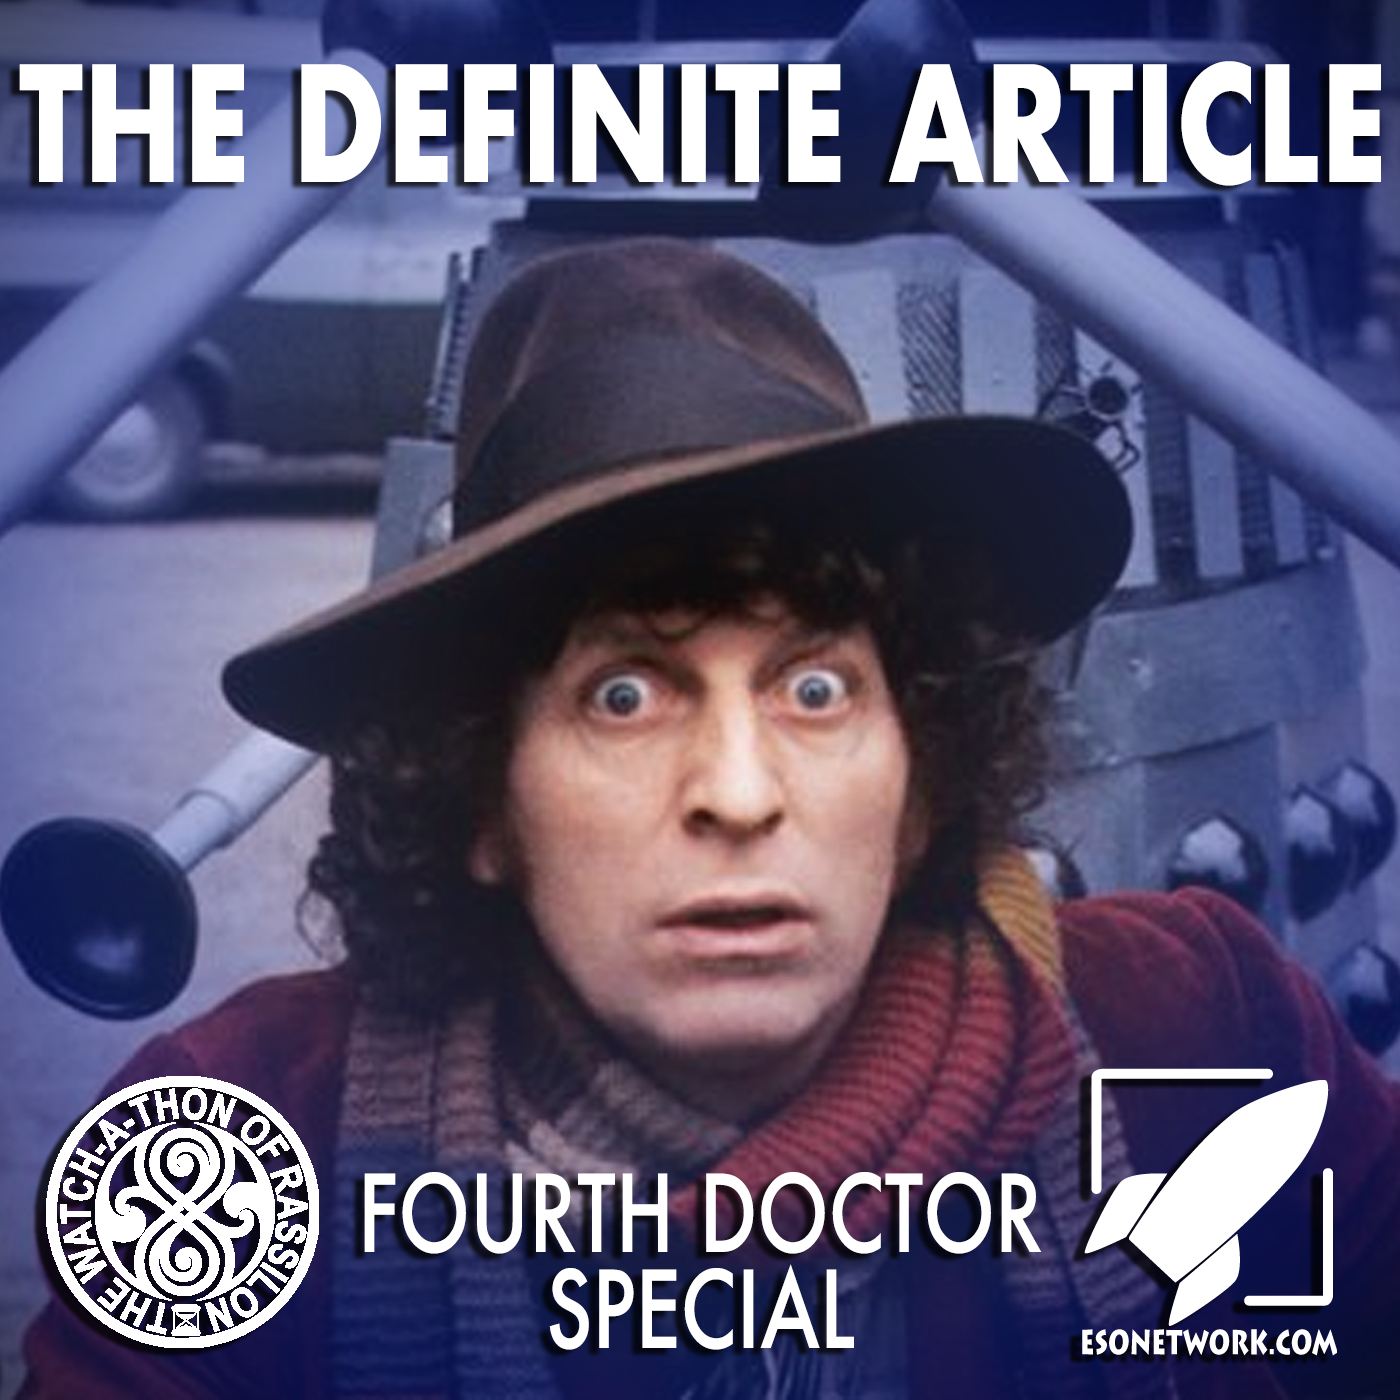 The Watch-A-Thon of Rassilon: Fourth Doctor Special: The Definite Article